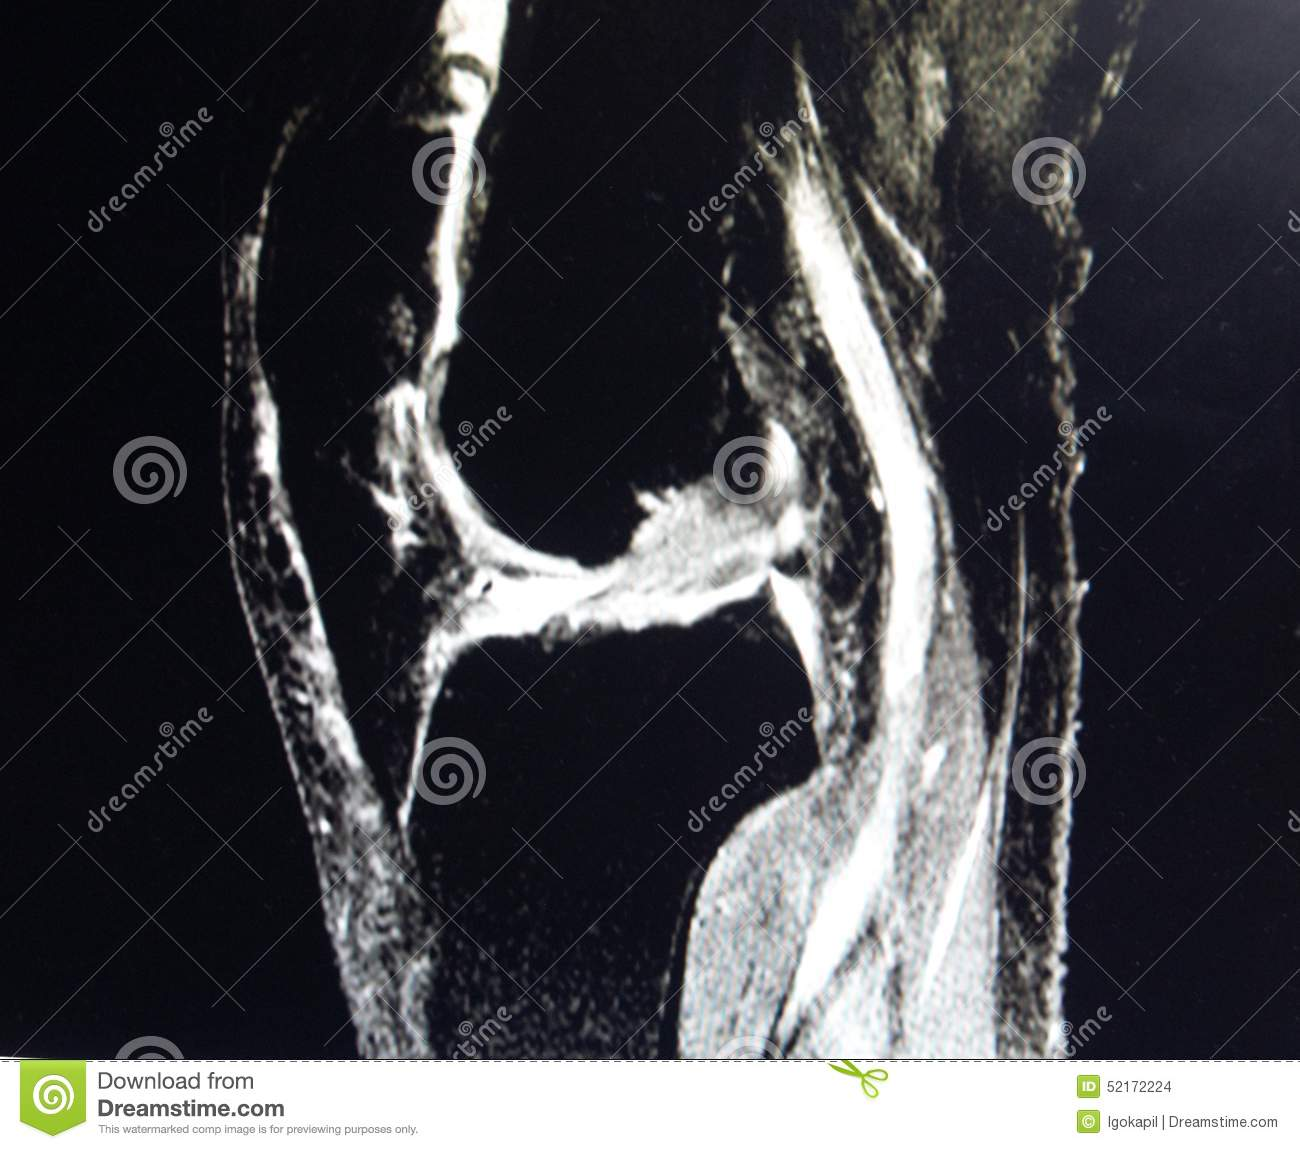 Mri knee large joint effusion with synovitis pathology stock photo mri knee large joint effusion with synovitis pathology stock photo image of infection knee 52172224 ccuart Images